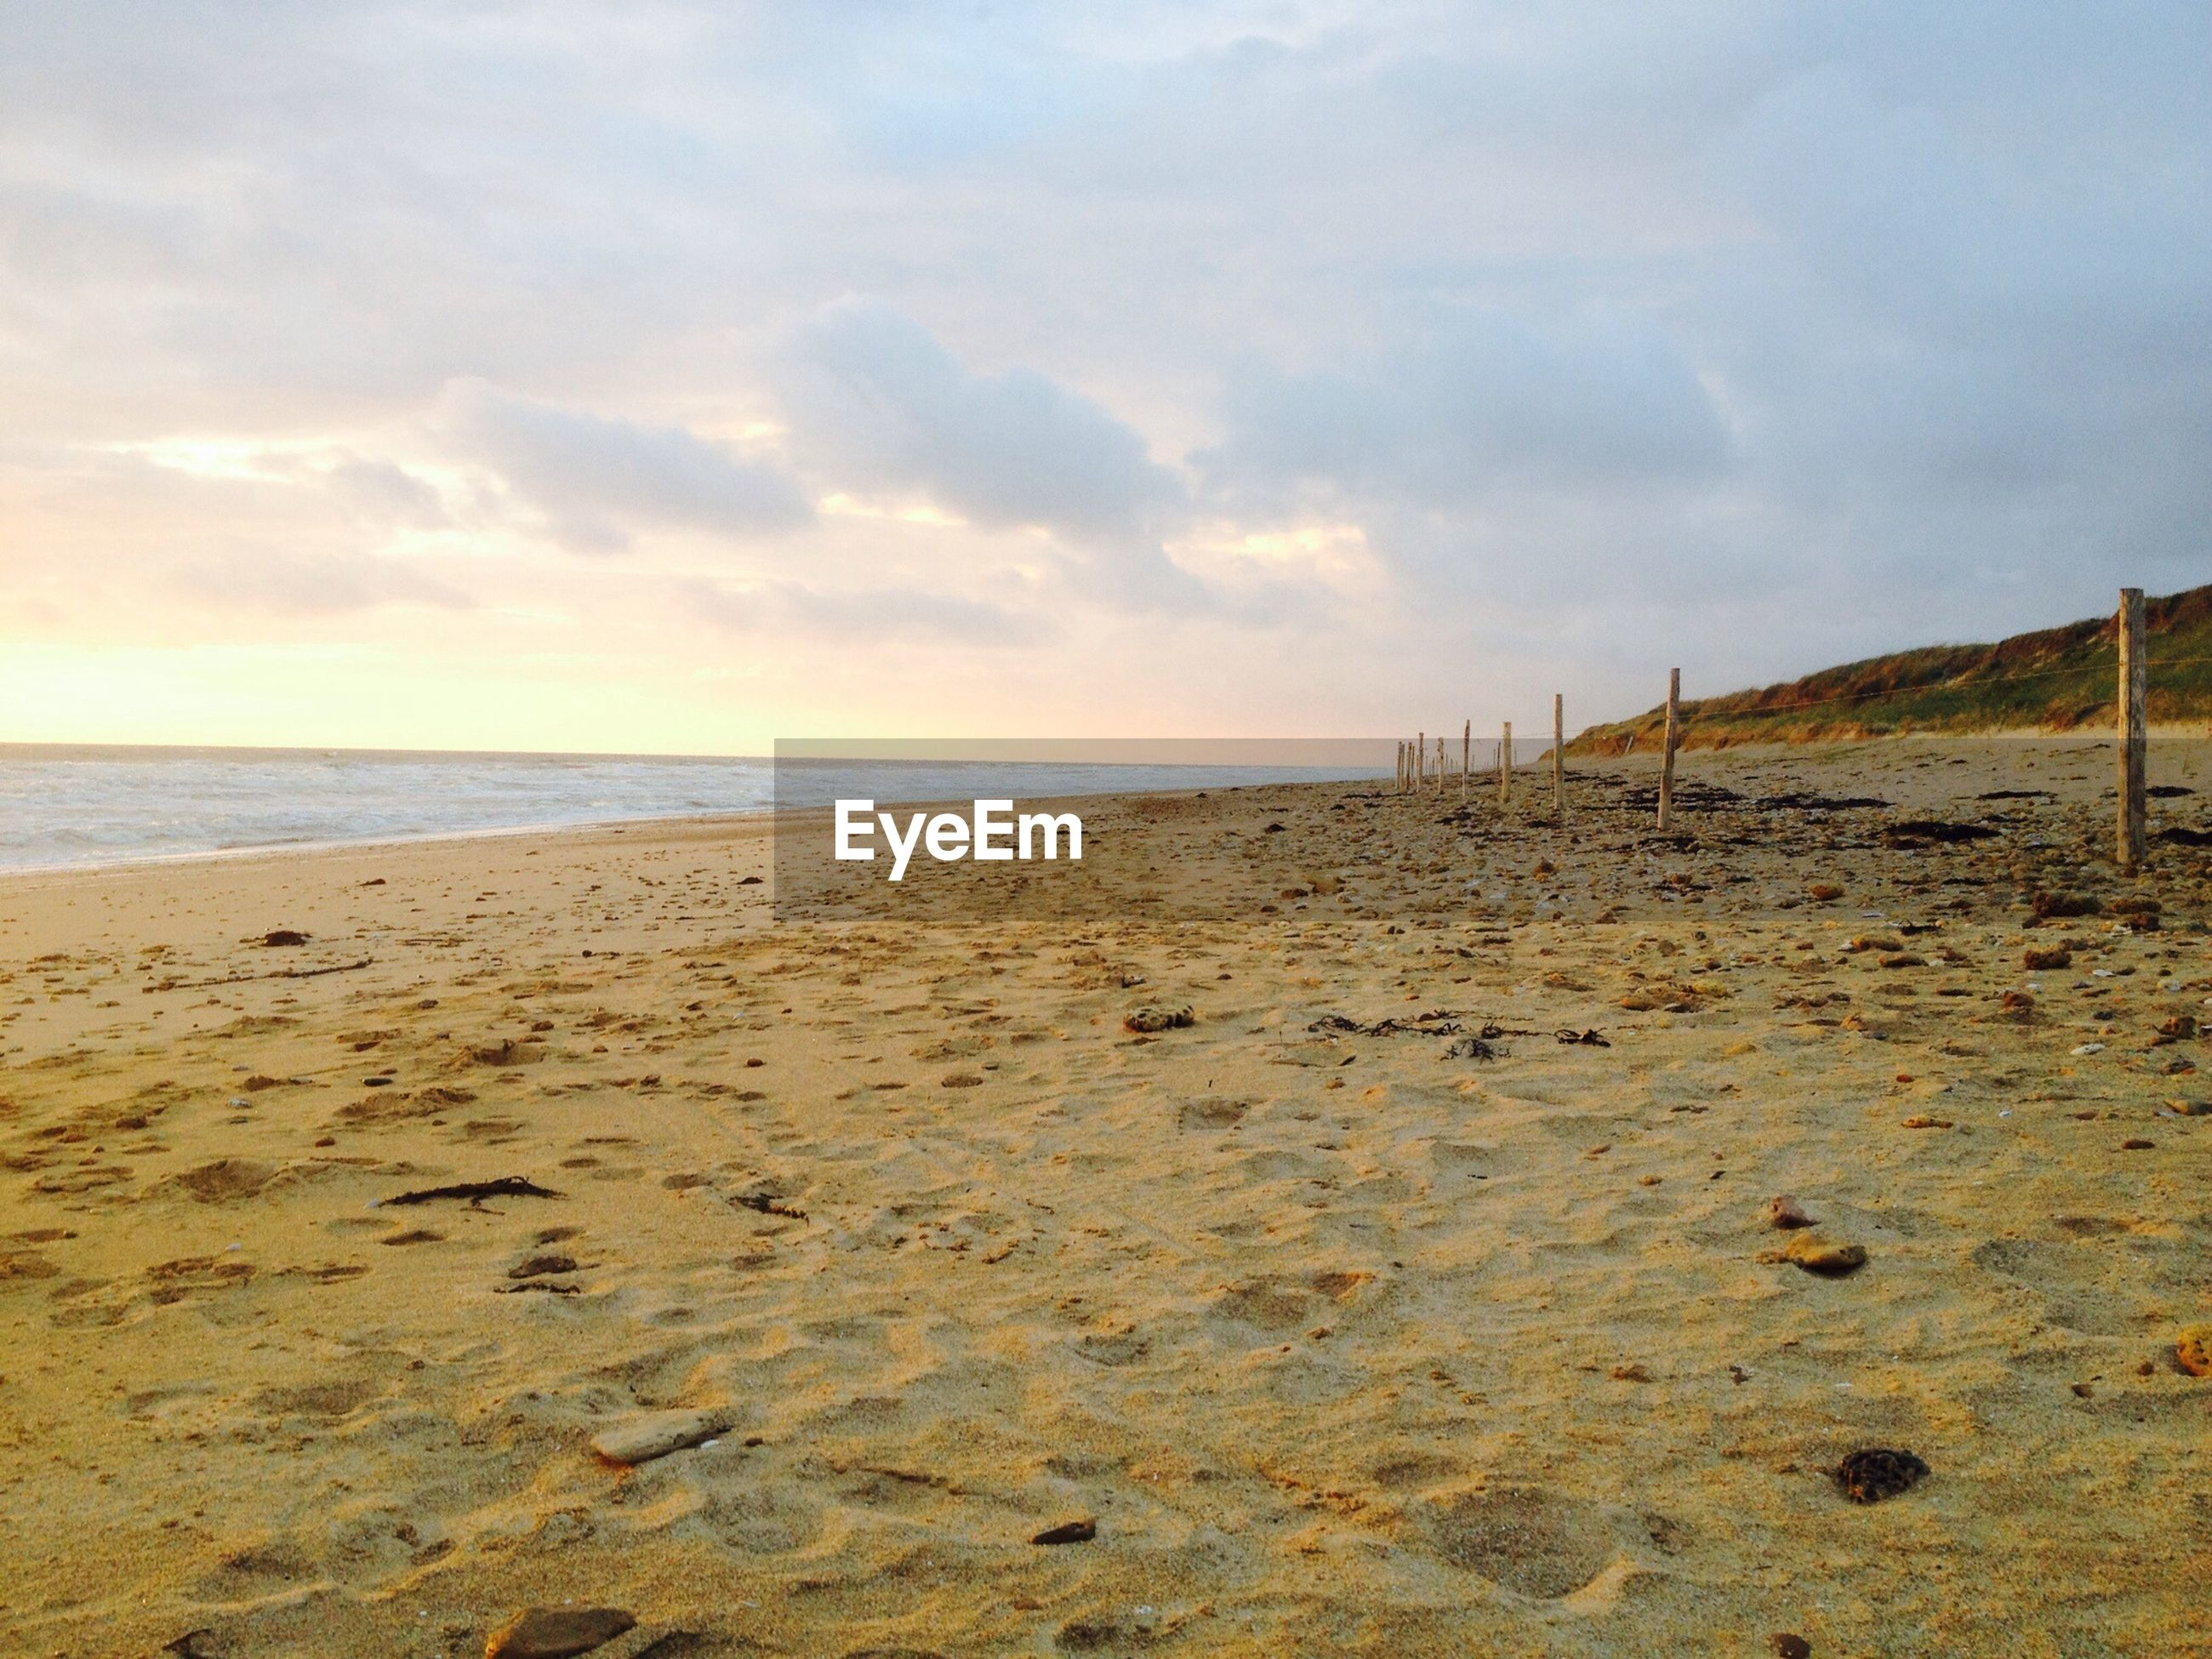 beach, sea, sky, horizon over water, water, sand, shore, tranquil scene, tranquility, scenics, cloud - sky, beauty in nature, nature, cloud, cloudy, coastline, idyllic, calm, outdoors, remote